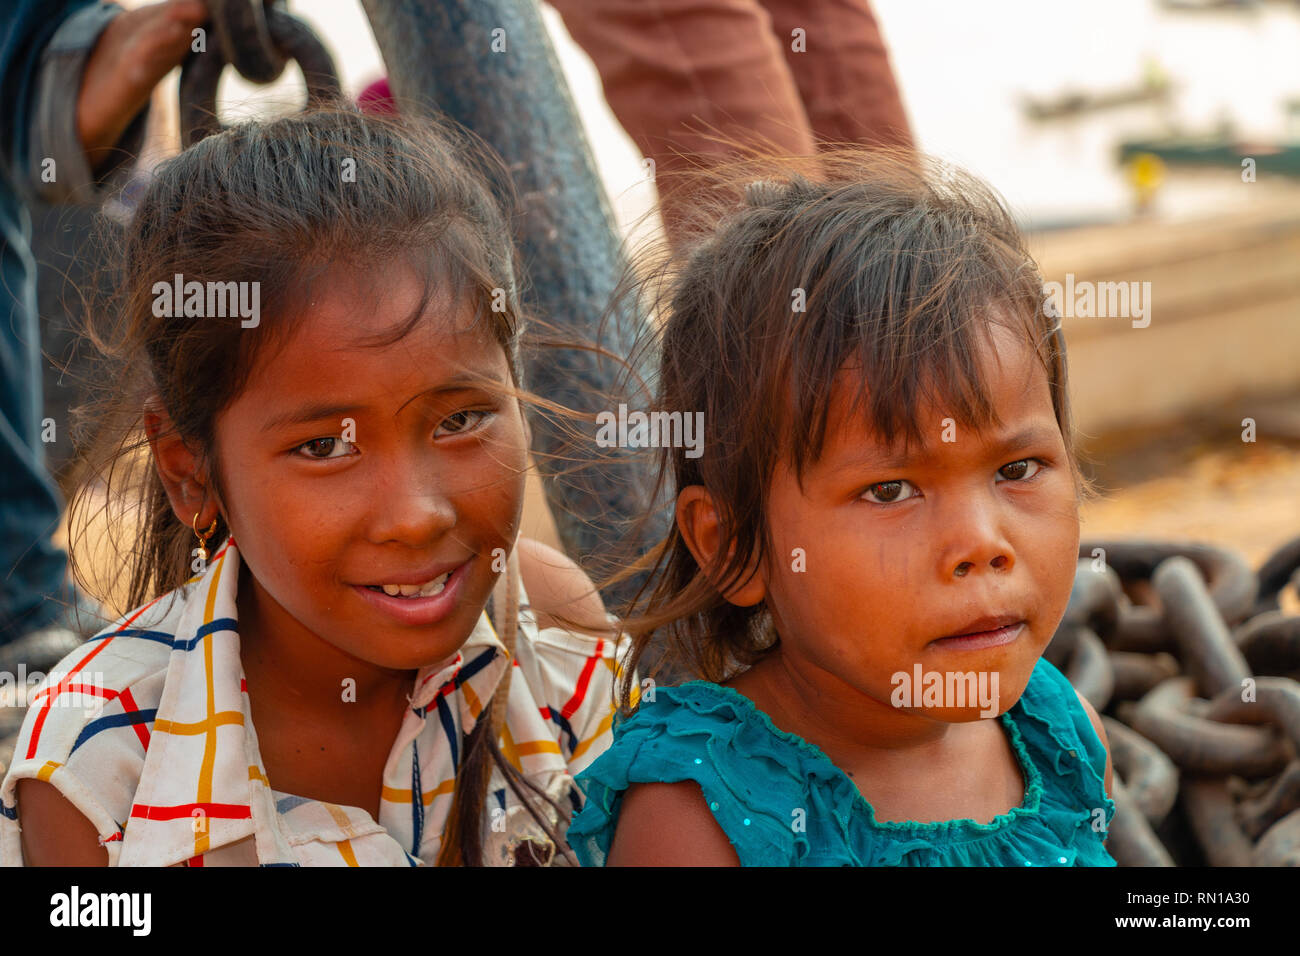 Portrait of a cute, happy,smiling, young, local,   primary school age Cambodian children playing outside   Kampong Tralach, Oudong, Cambodia, Asia - Stock Image